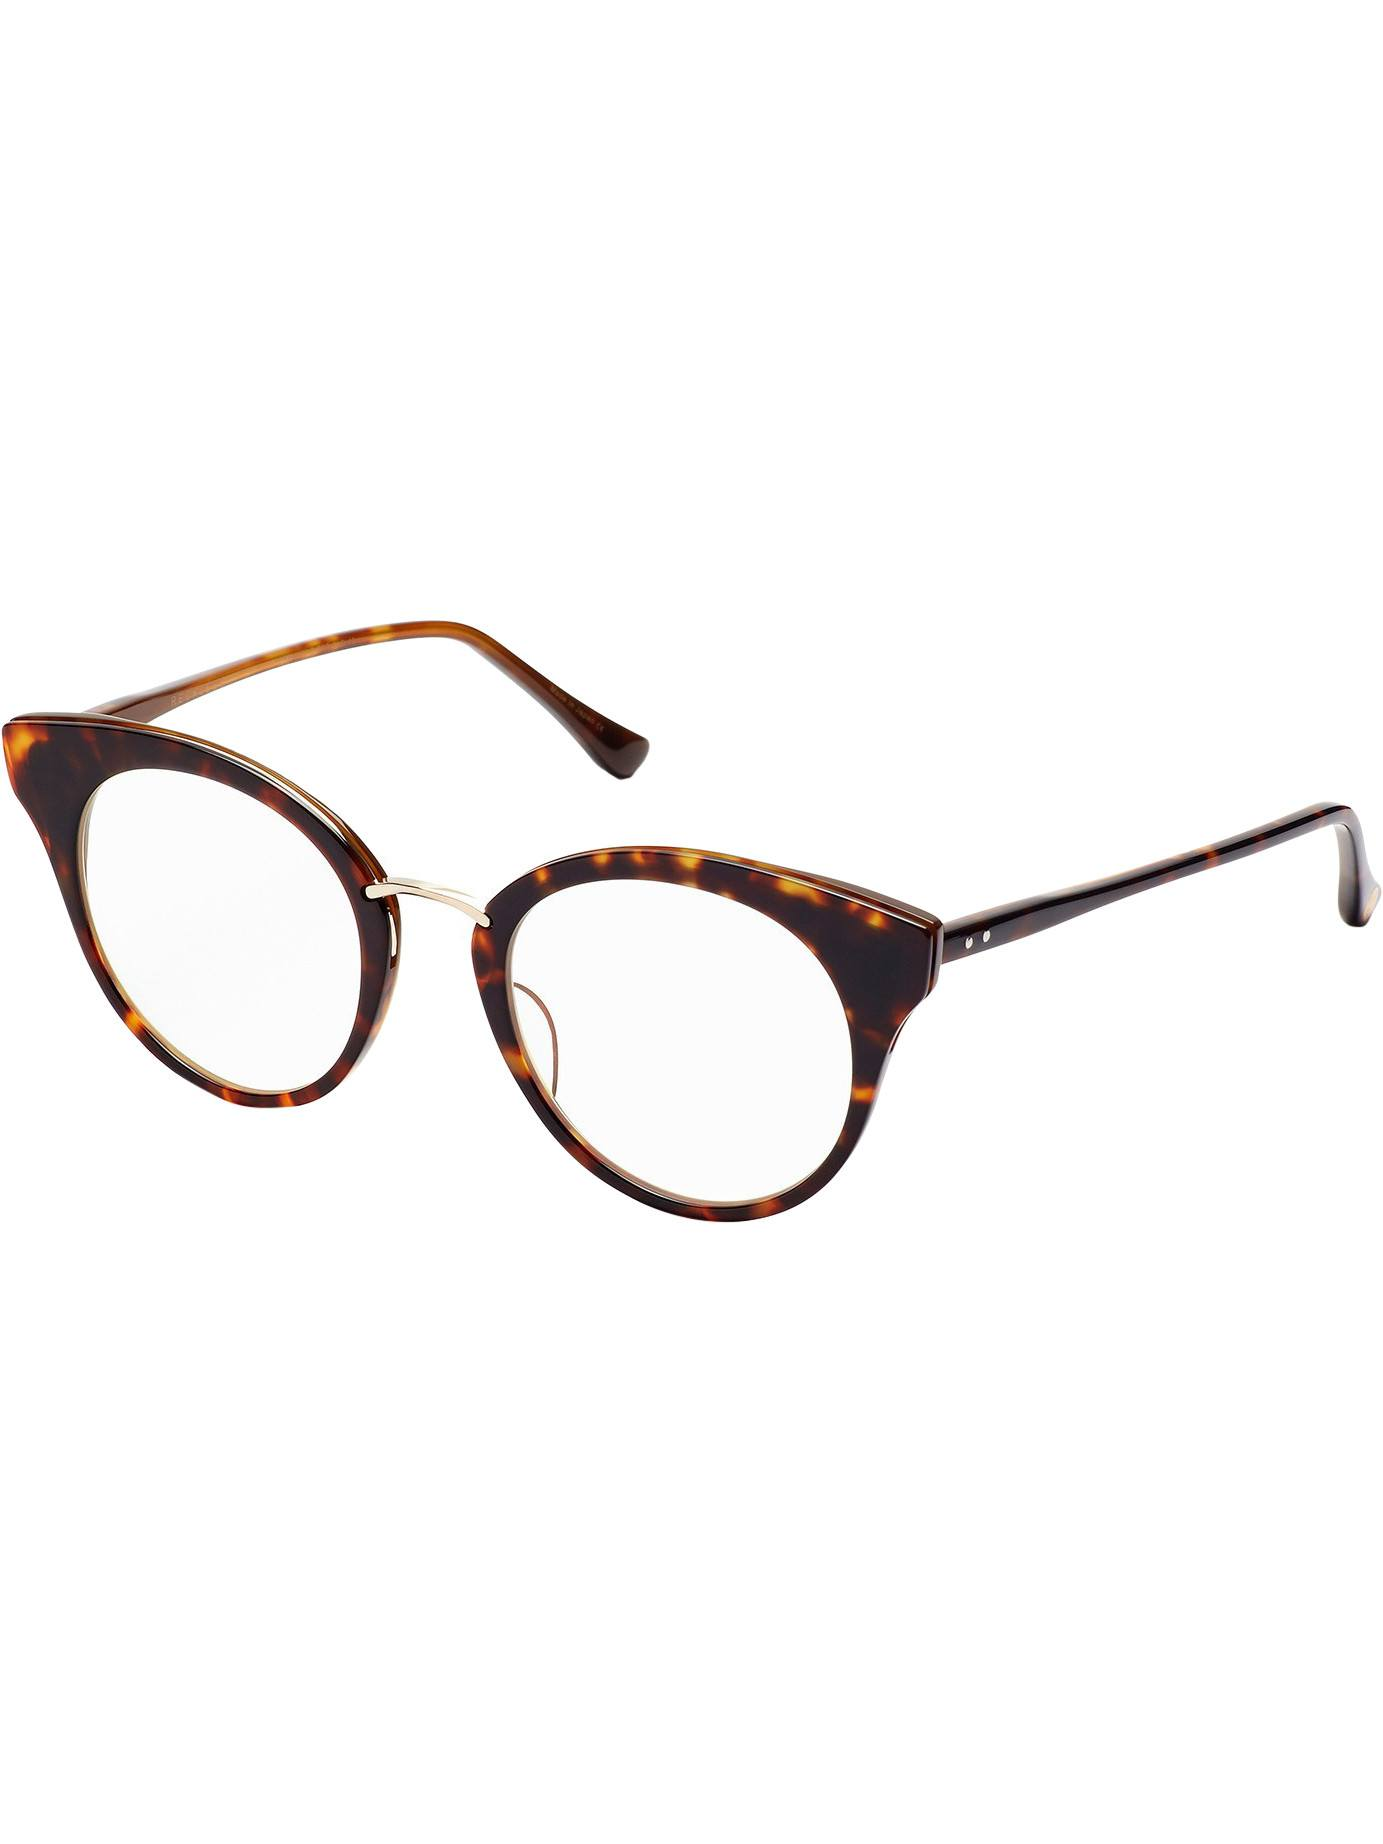 Optical Frame - Dita Reckless DRX-3037B Glasses